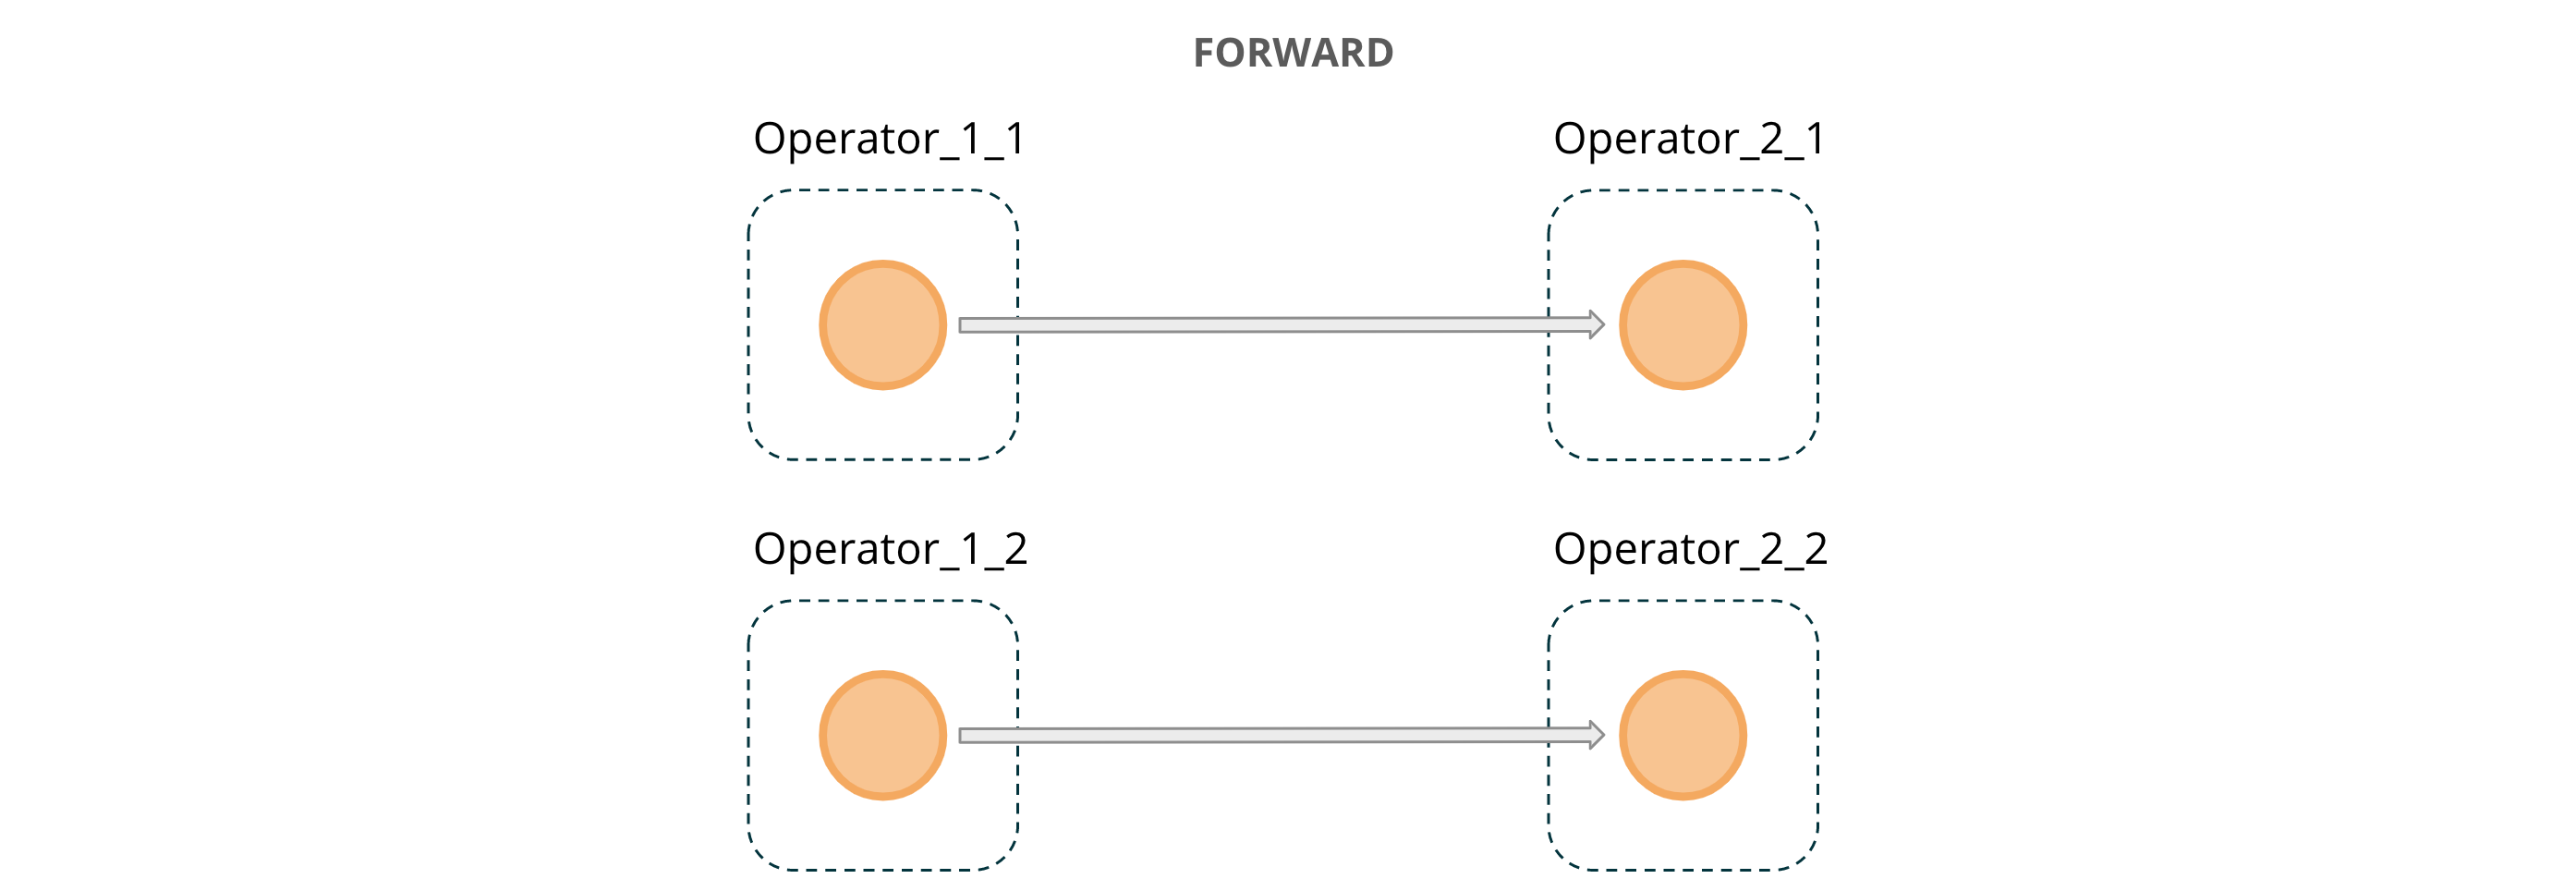 Figure 3: FORWARD message passing across operator instances